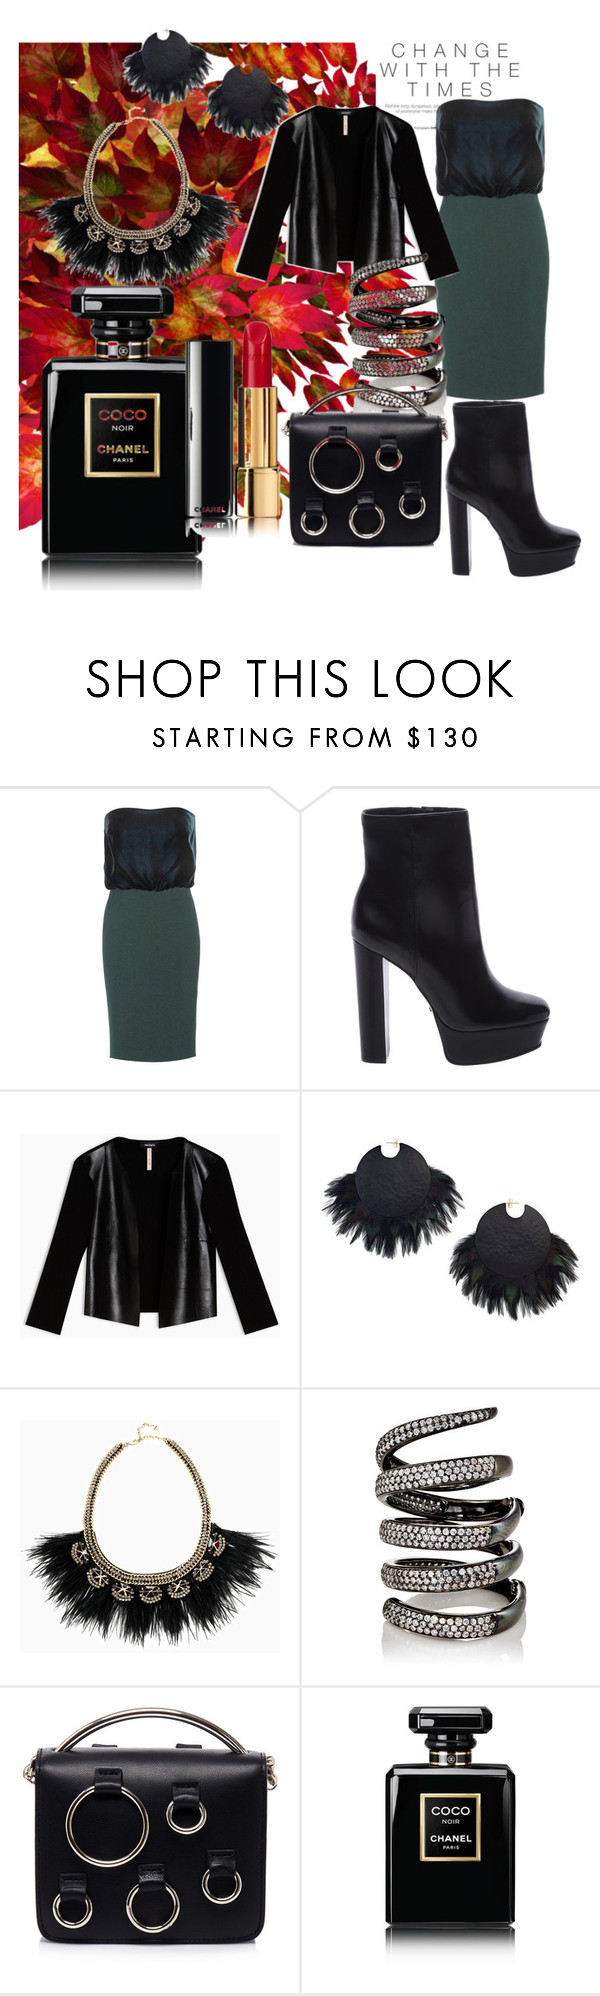 """""""changes"""" by sofiacalo ❤ liked on Polyvore featuring Tom Ford, Schutz, Max&Co., Stella & Dot, Fallon, MSGM and Chanel"""